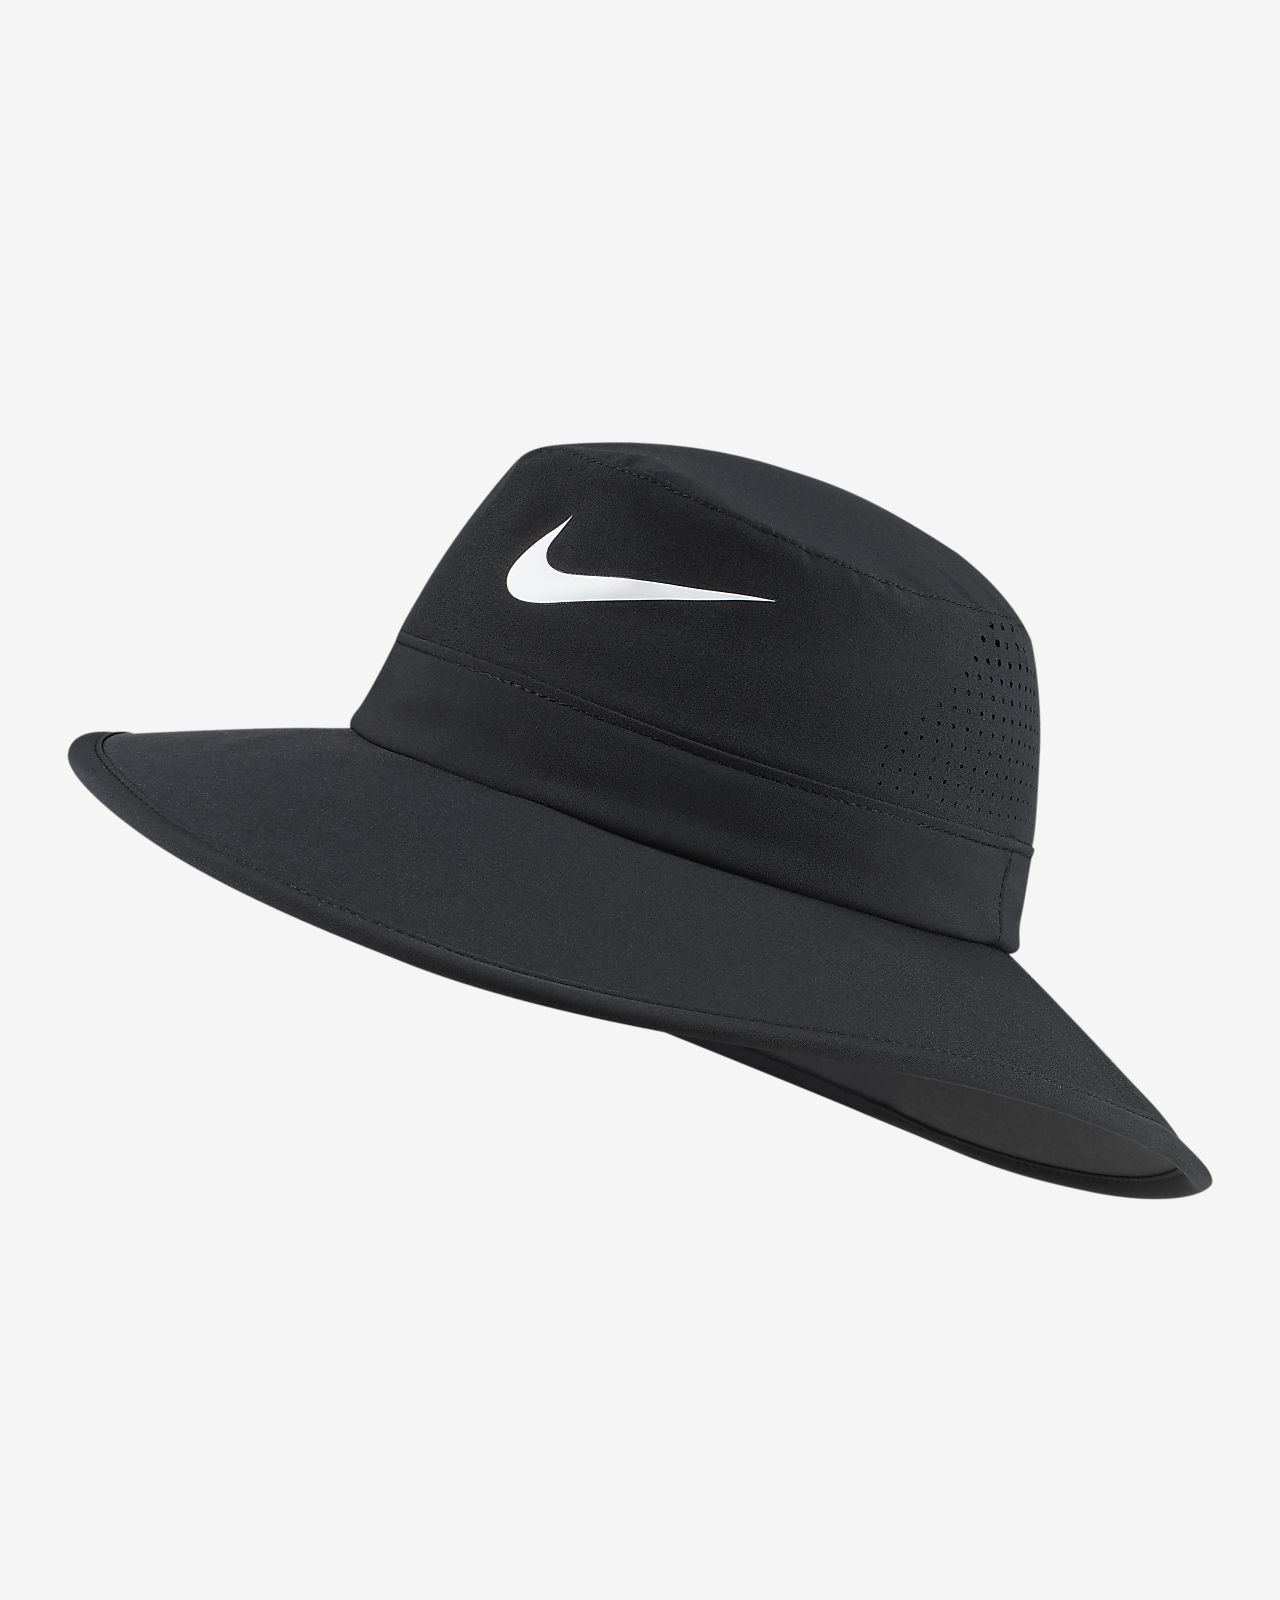 de7a6e72a Nike Sun Protect Golf Hat